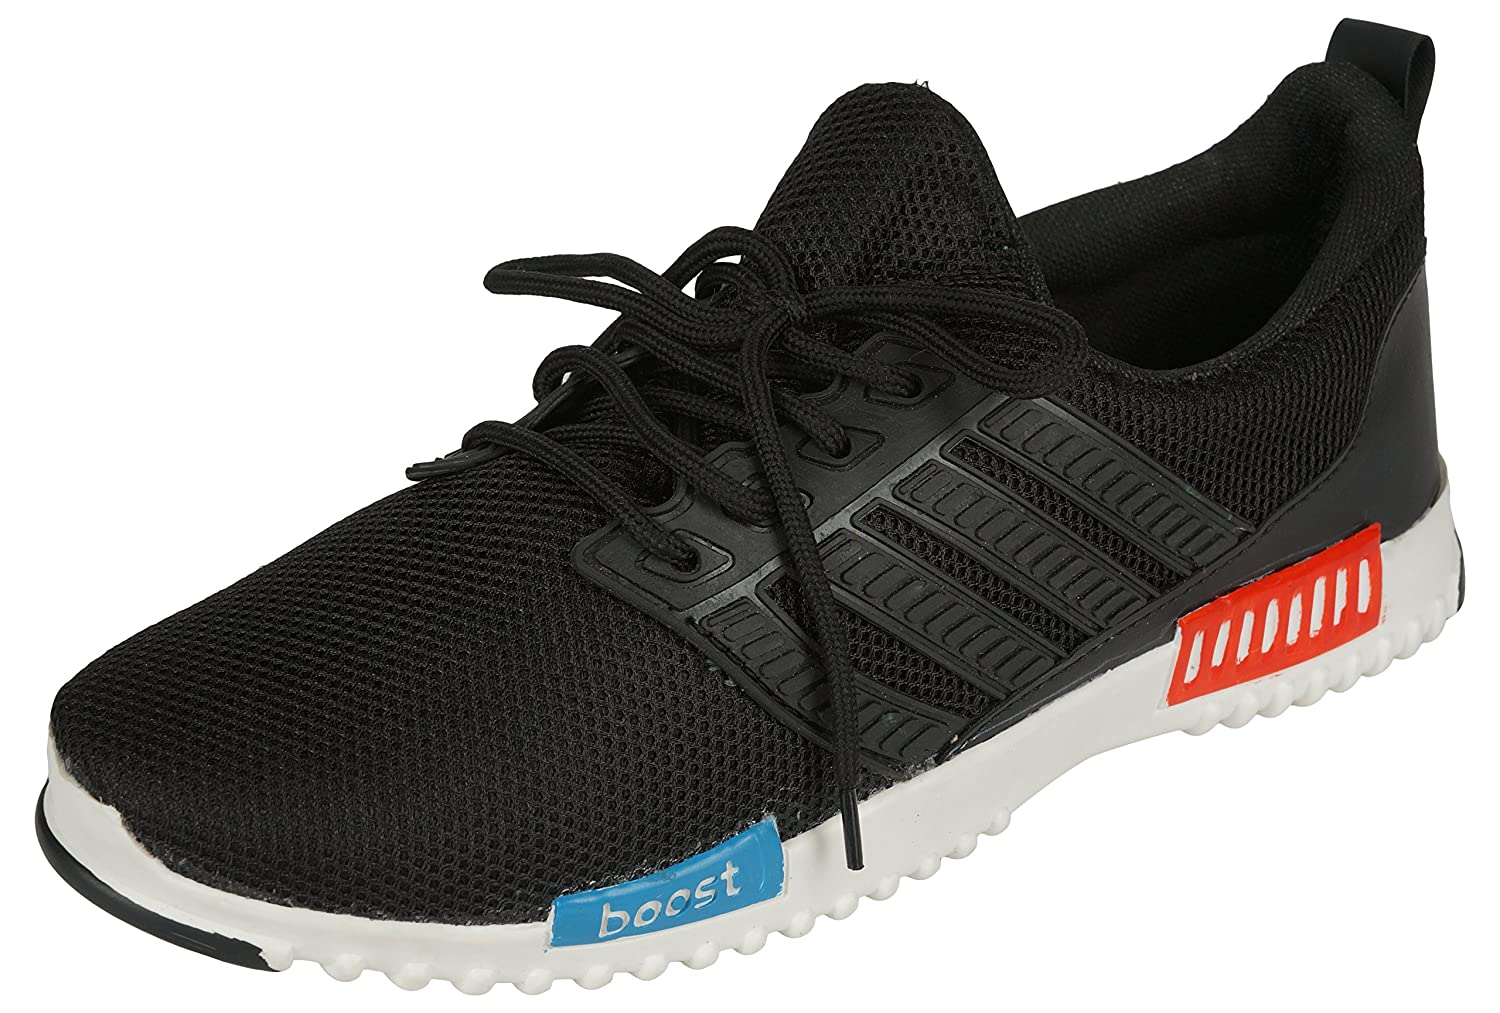 best sport shoes under 1000 in india